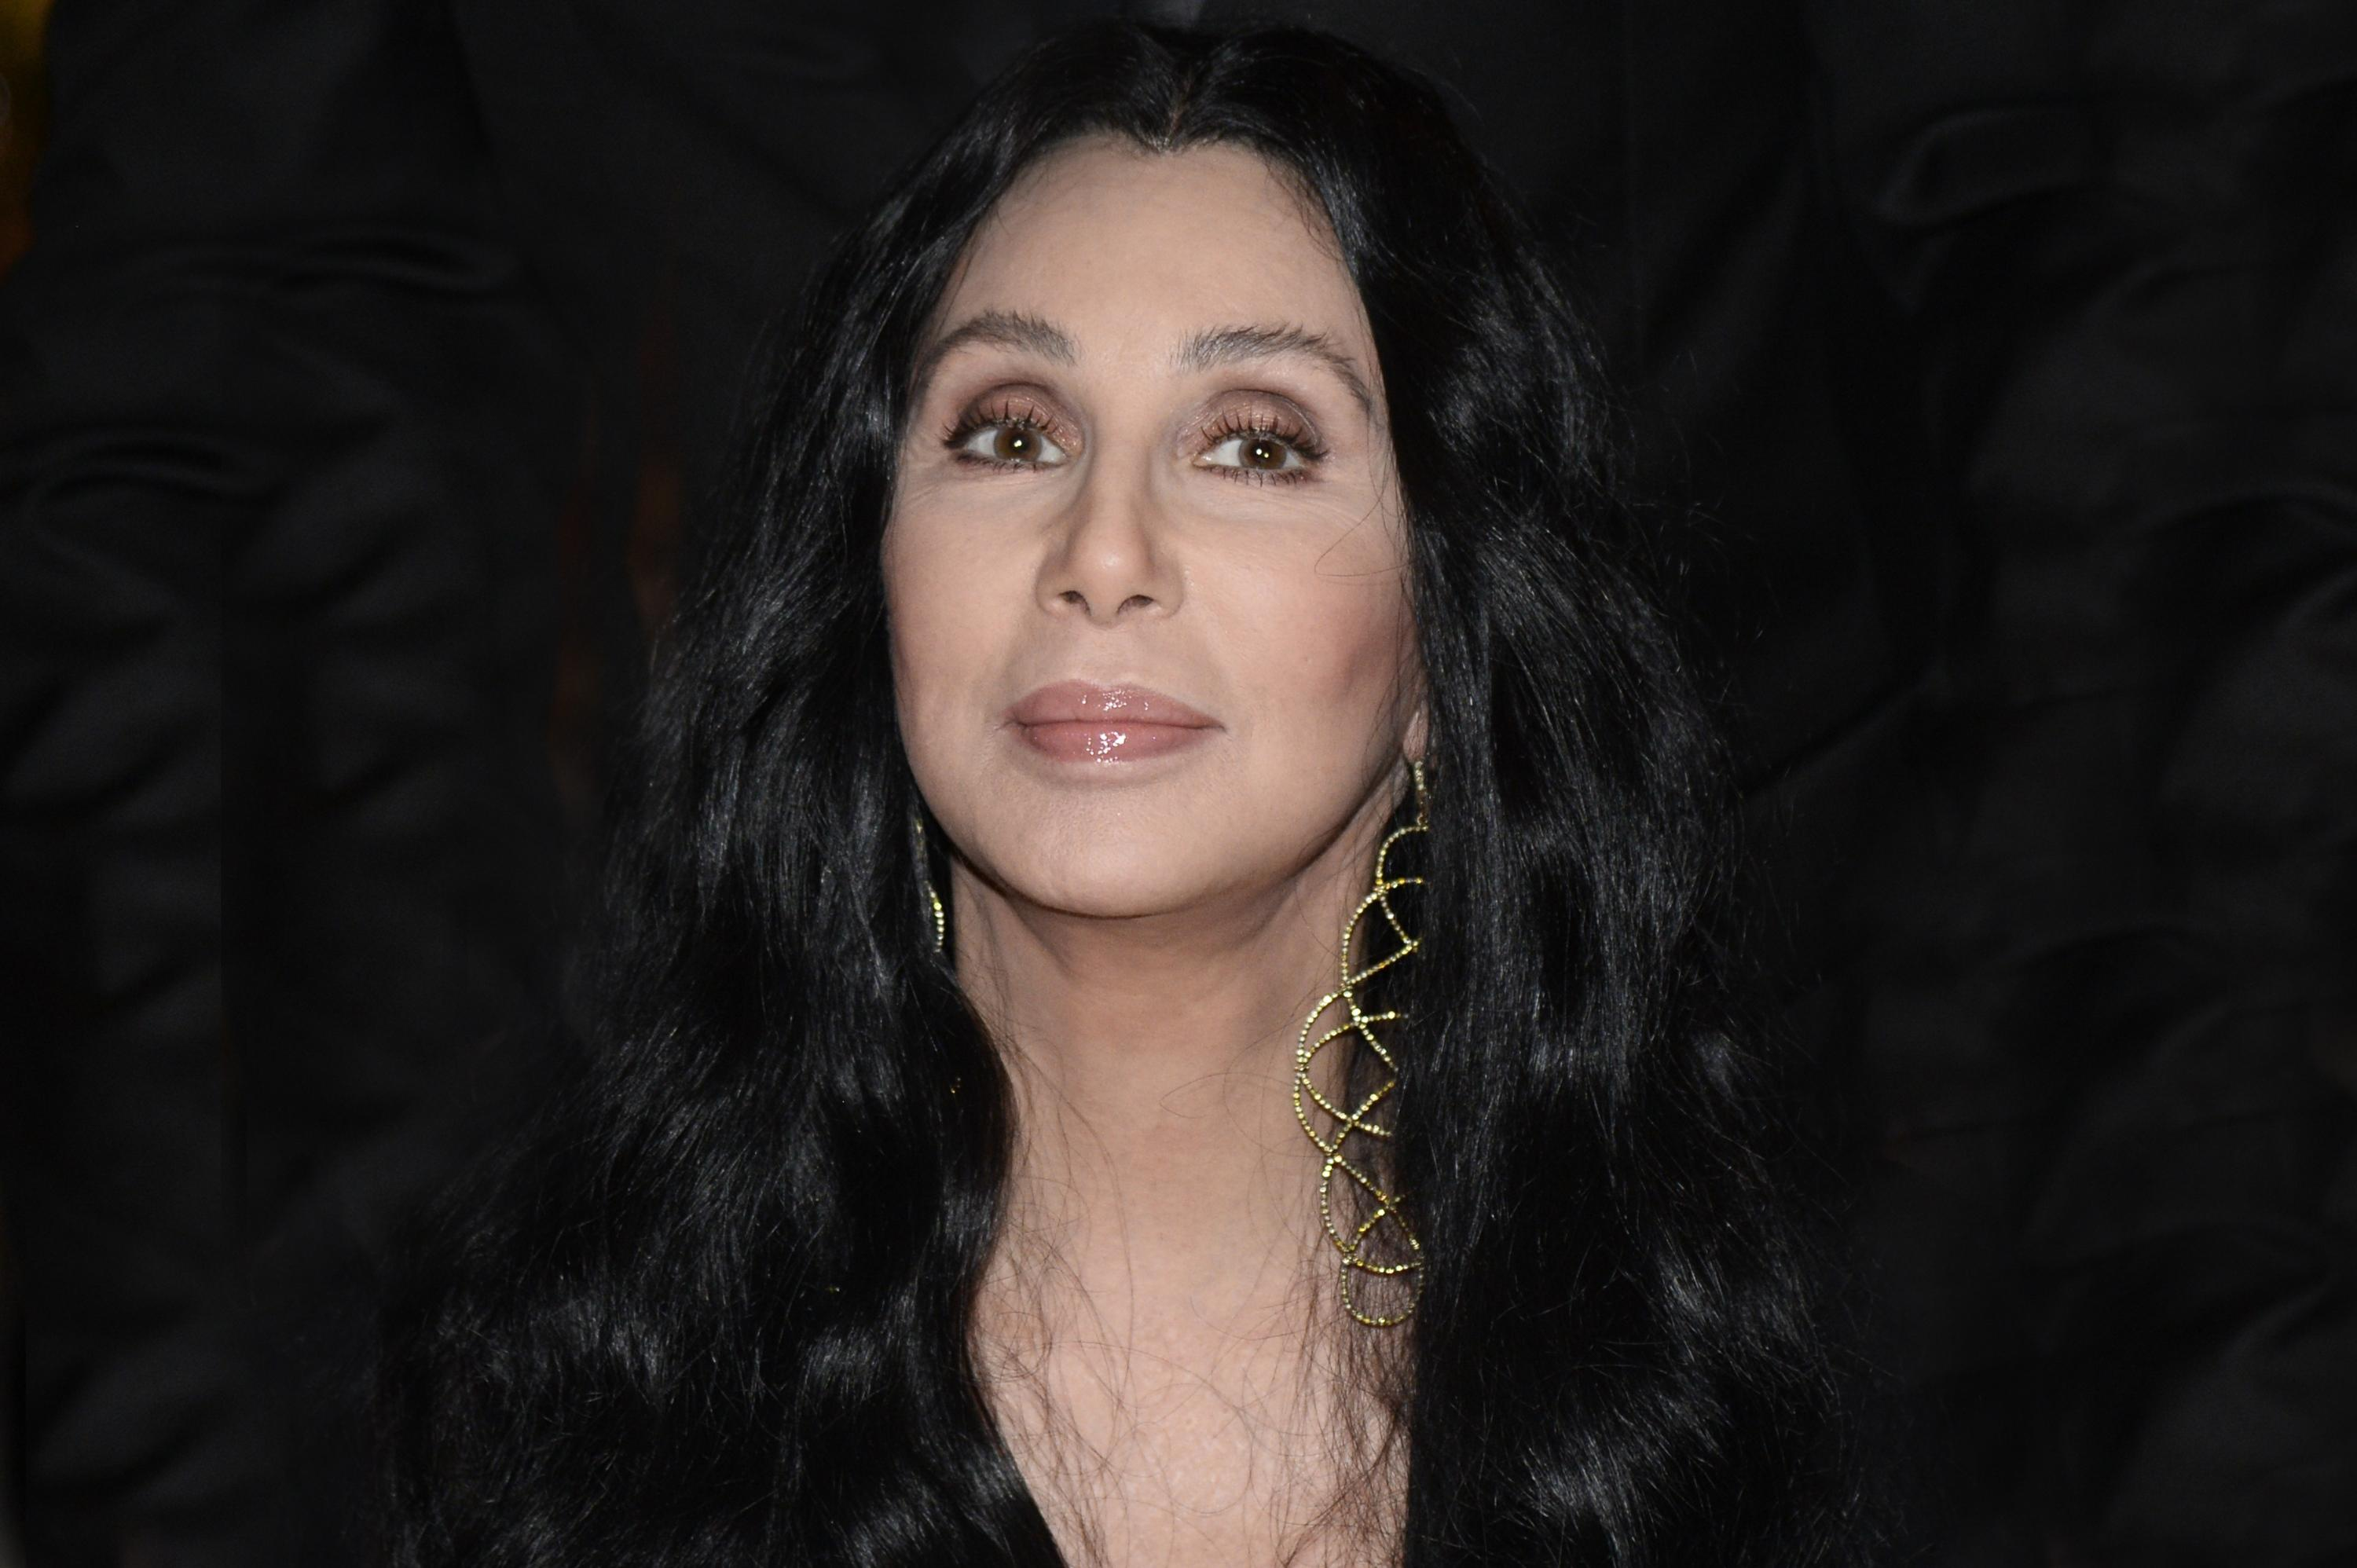 Cher tweets support for Nick Diaz after his five-year ban for marijuana usage